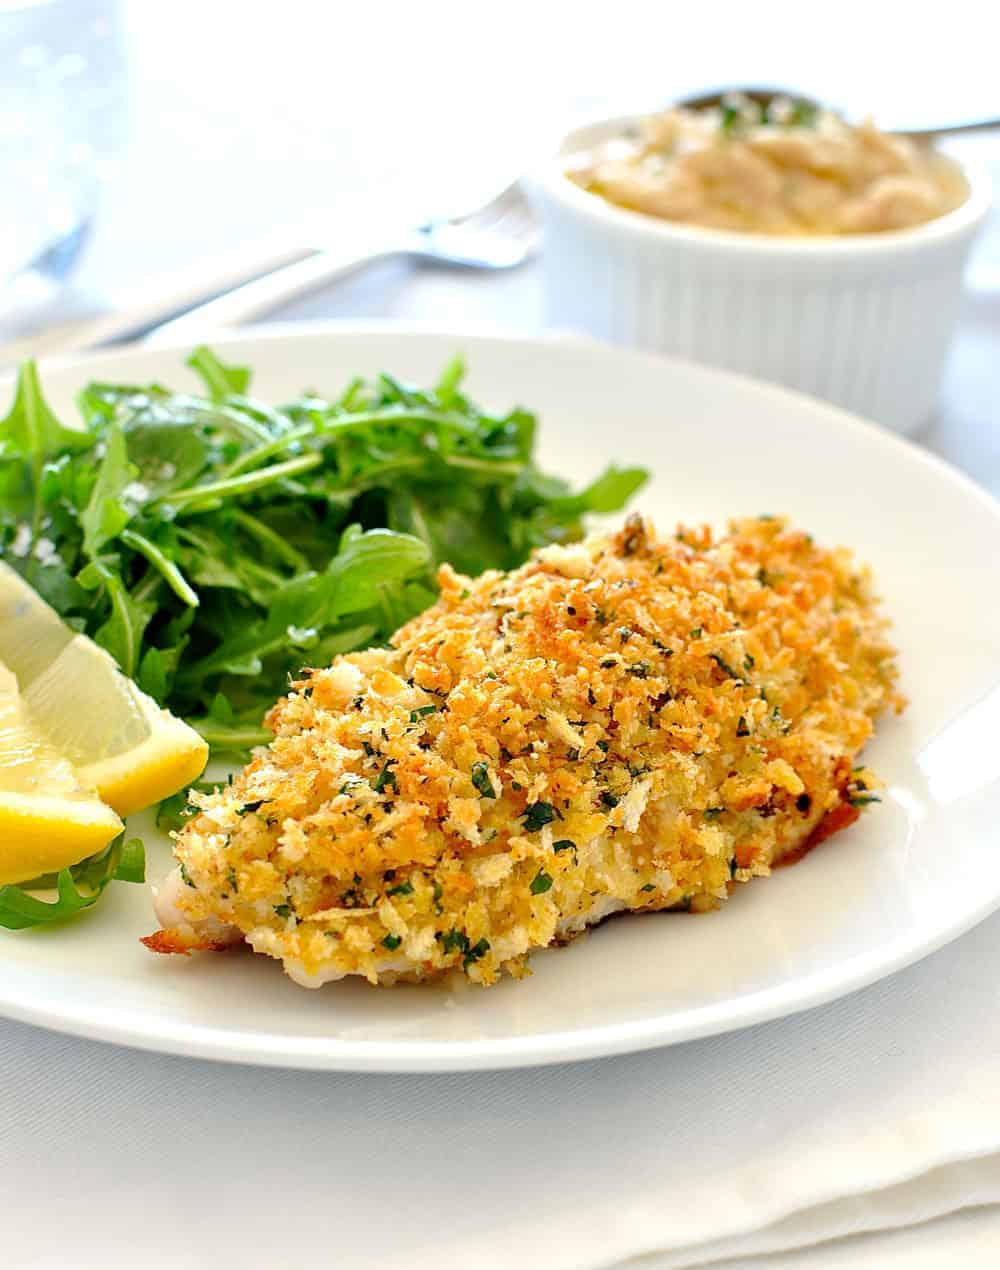 Insanely delicious golden parmesan garlic crumb and a perfectly cooked fish. {15 minutes, 260 calories} #baked #broiled #grilled #healthy #crumbed